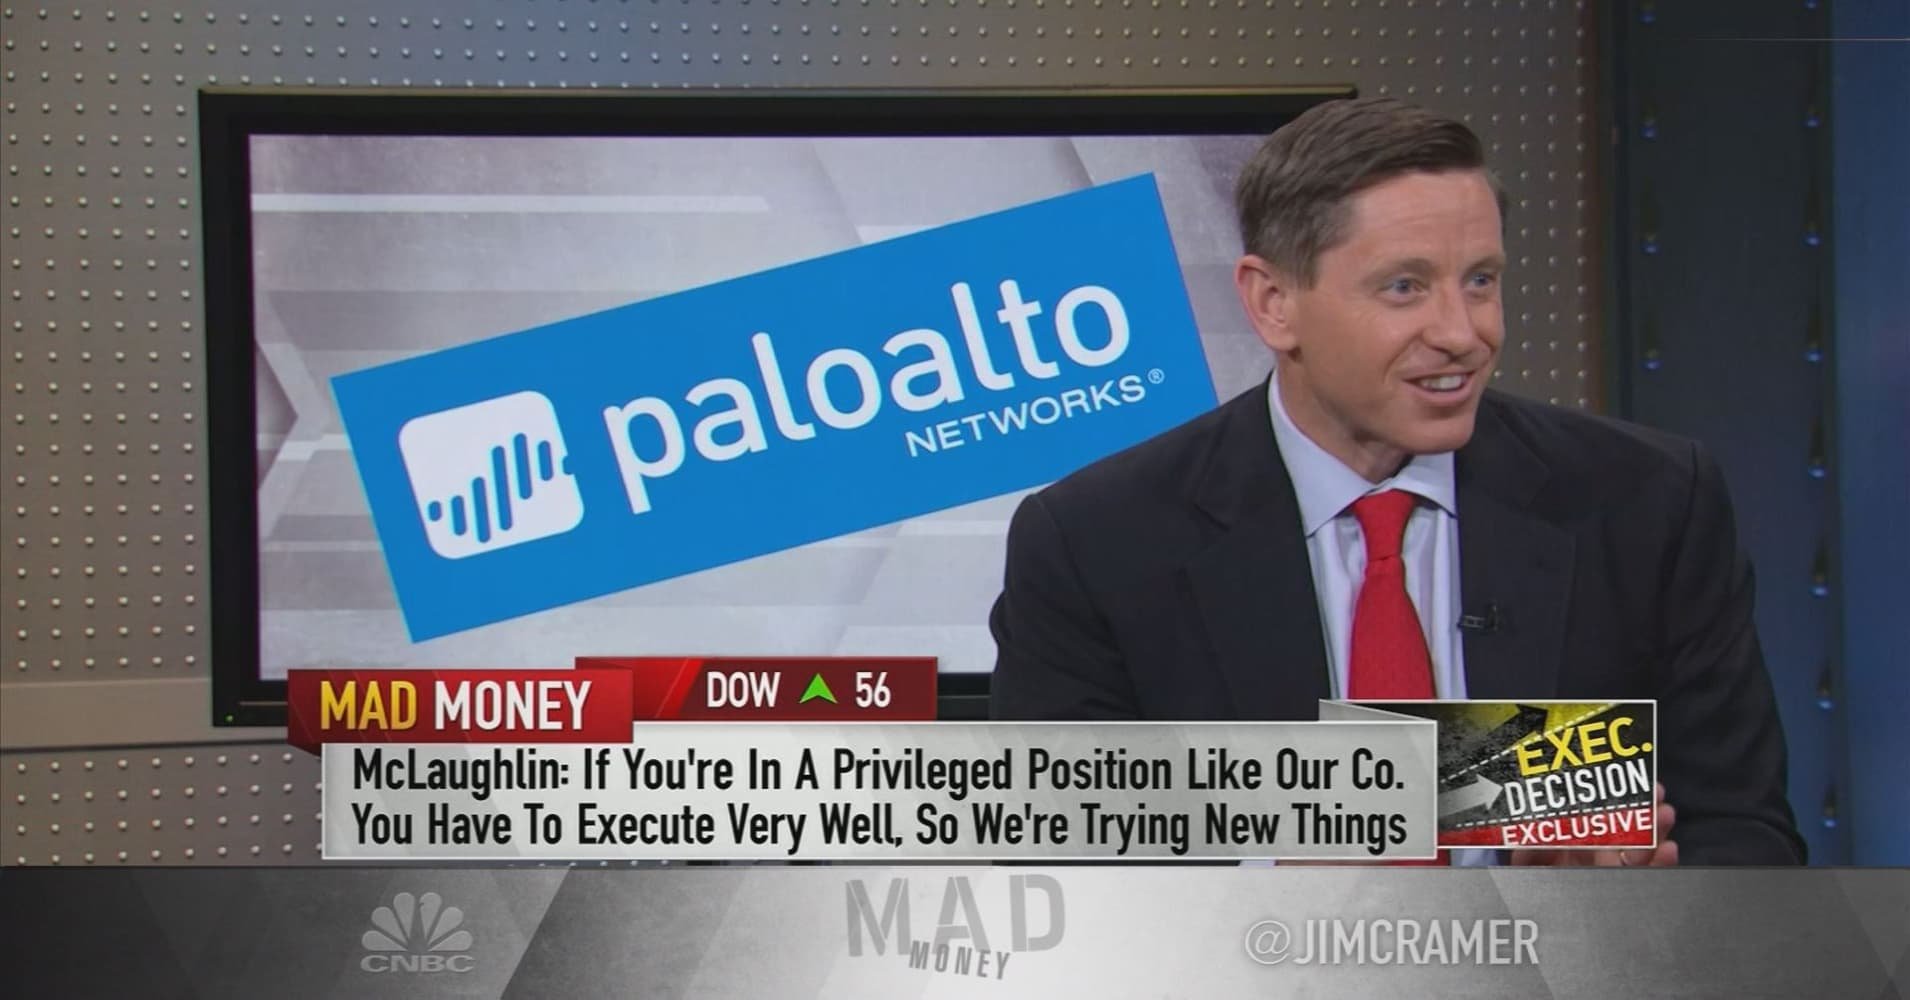 Palo alto networks ceo talks equifax hack dont chase the ambulance palo alto networks ceo on the epic equifax breach biocorpaavc